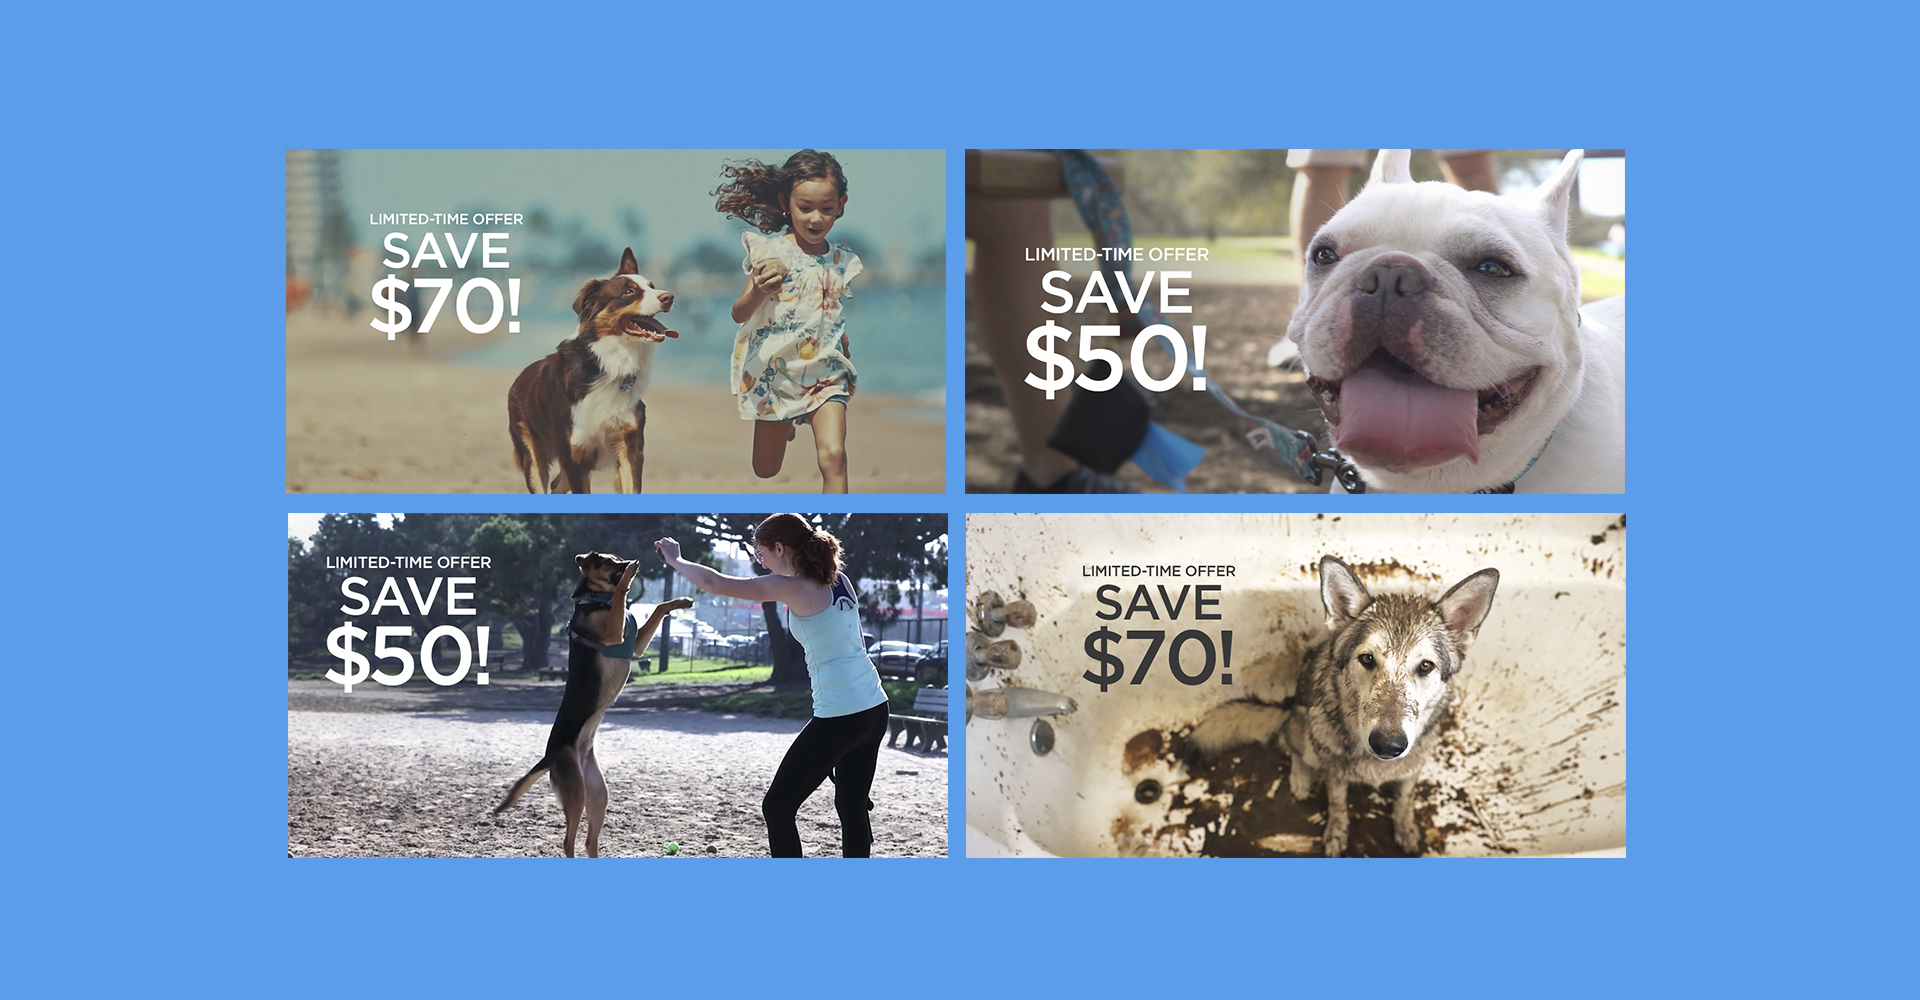 BISSELL BARKBATH™ grid of social ad images by Blue Flame Thinking